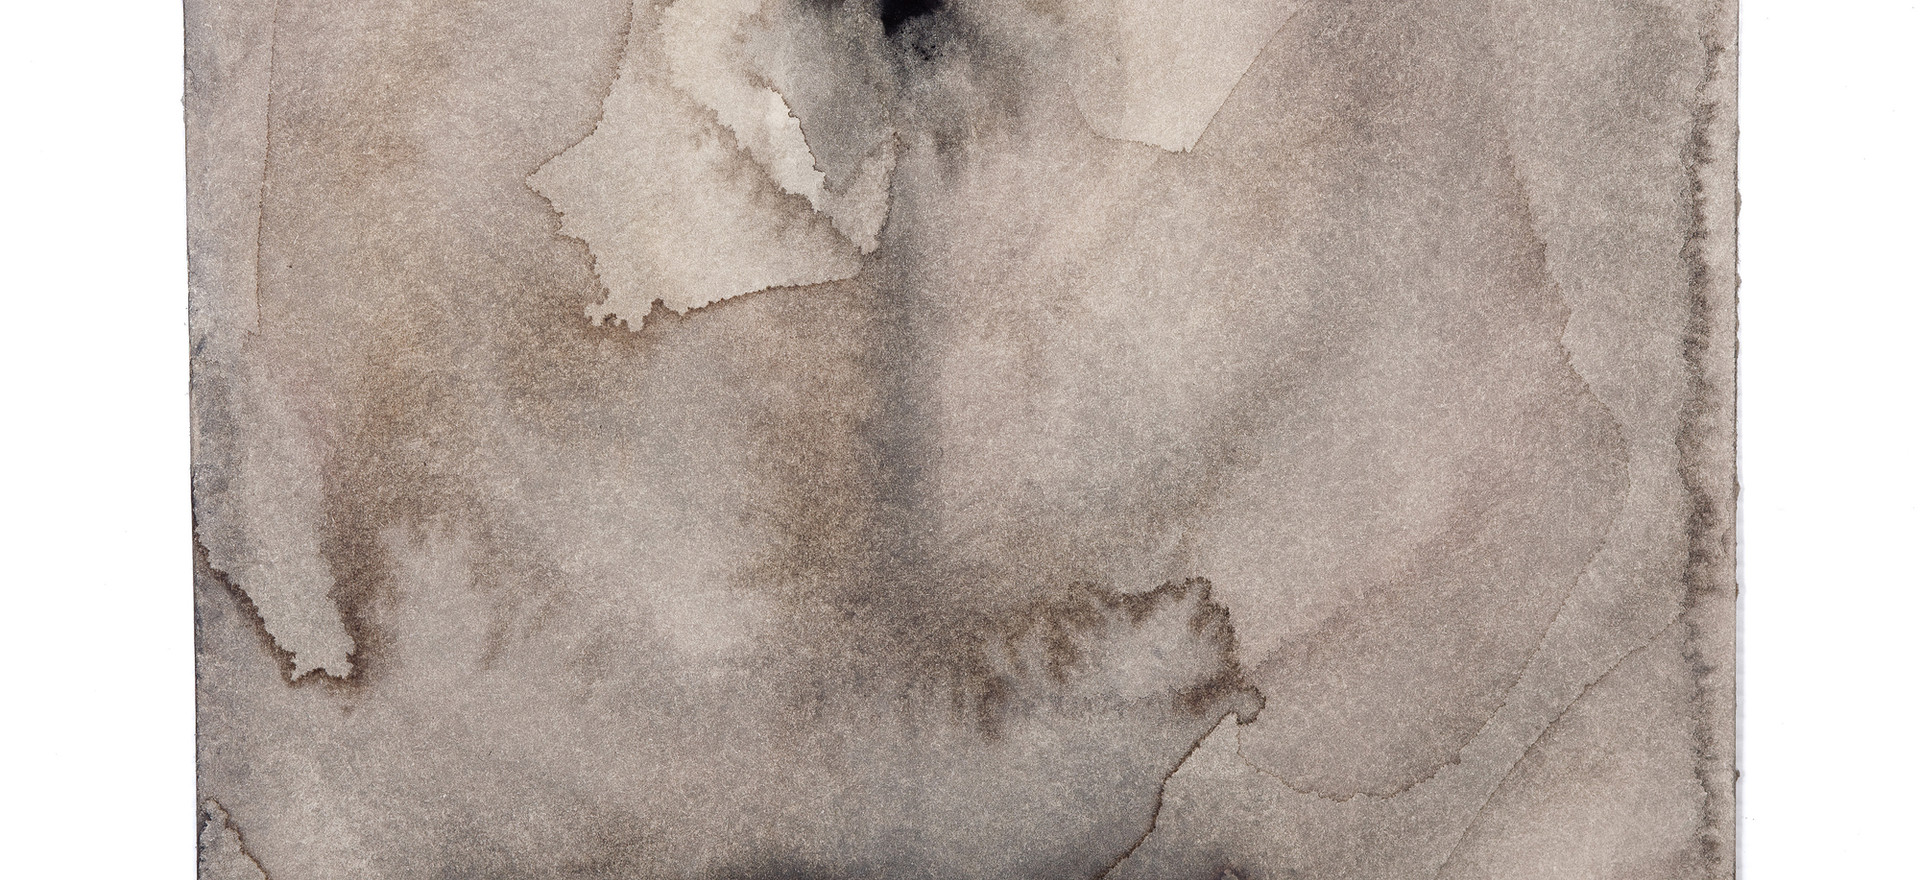 'Navel Series', 2012, watercolour on paper, 18 x 21 cm